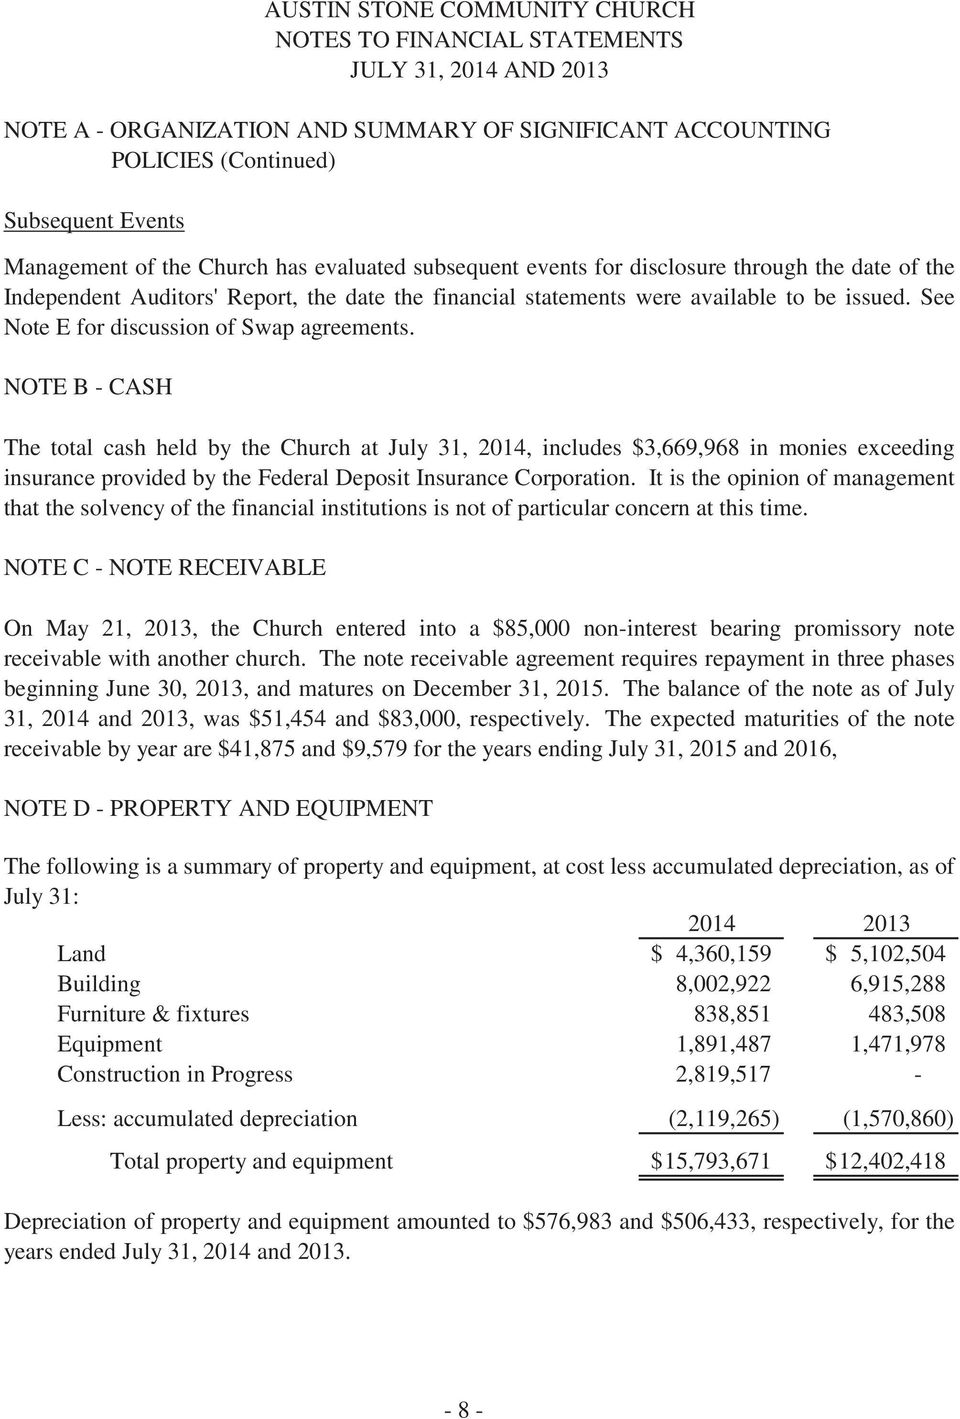 NOTE B - CASH The total cash held by the Church at July 31, 2014, includes $3,669,968 in monies exceeding insurance provided by the Federal Deposit Insurance Corporation.